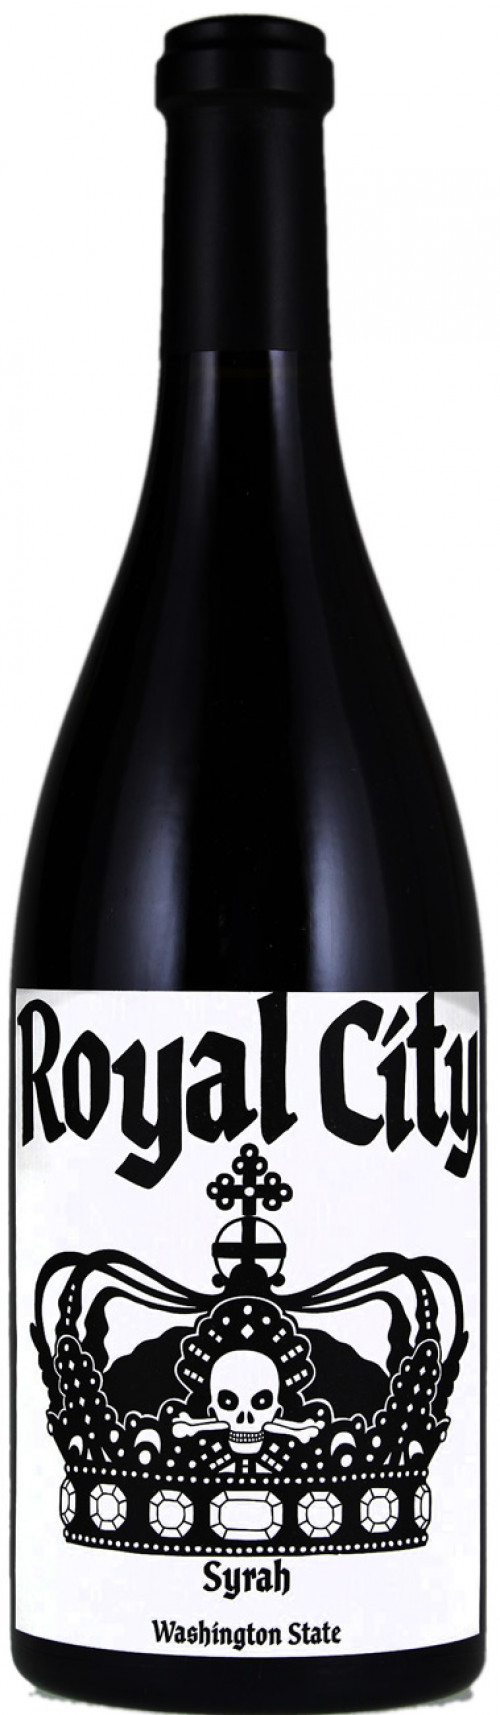 2016 K Vintners Royal City Syrah 750ml